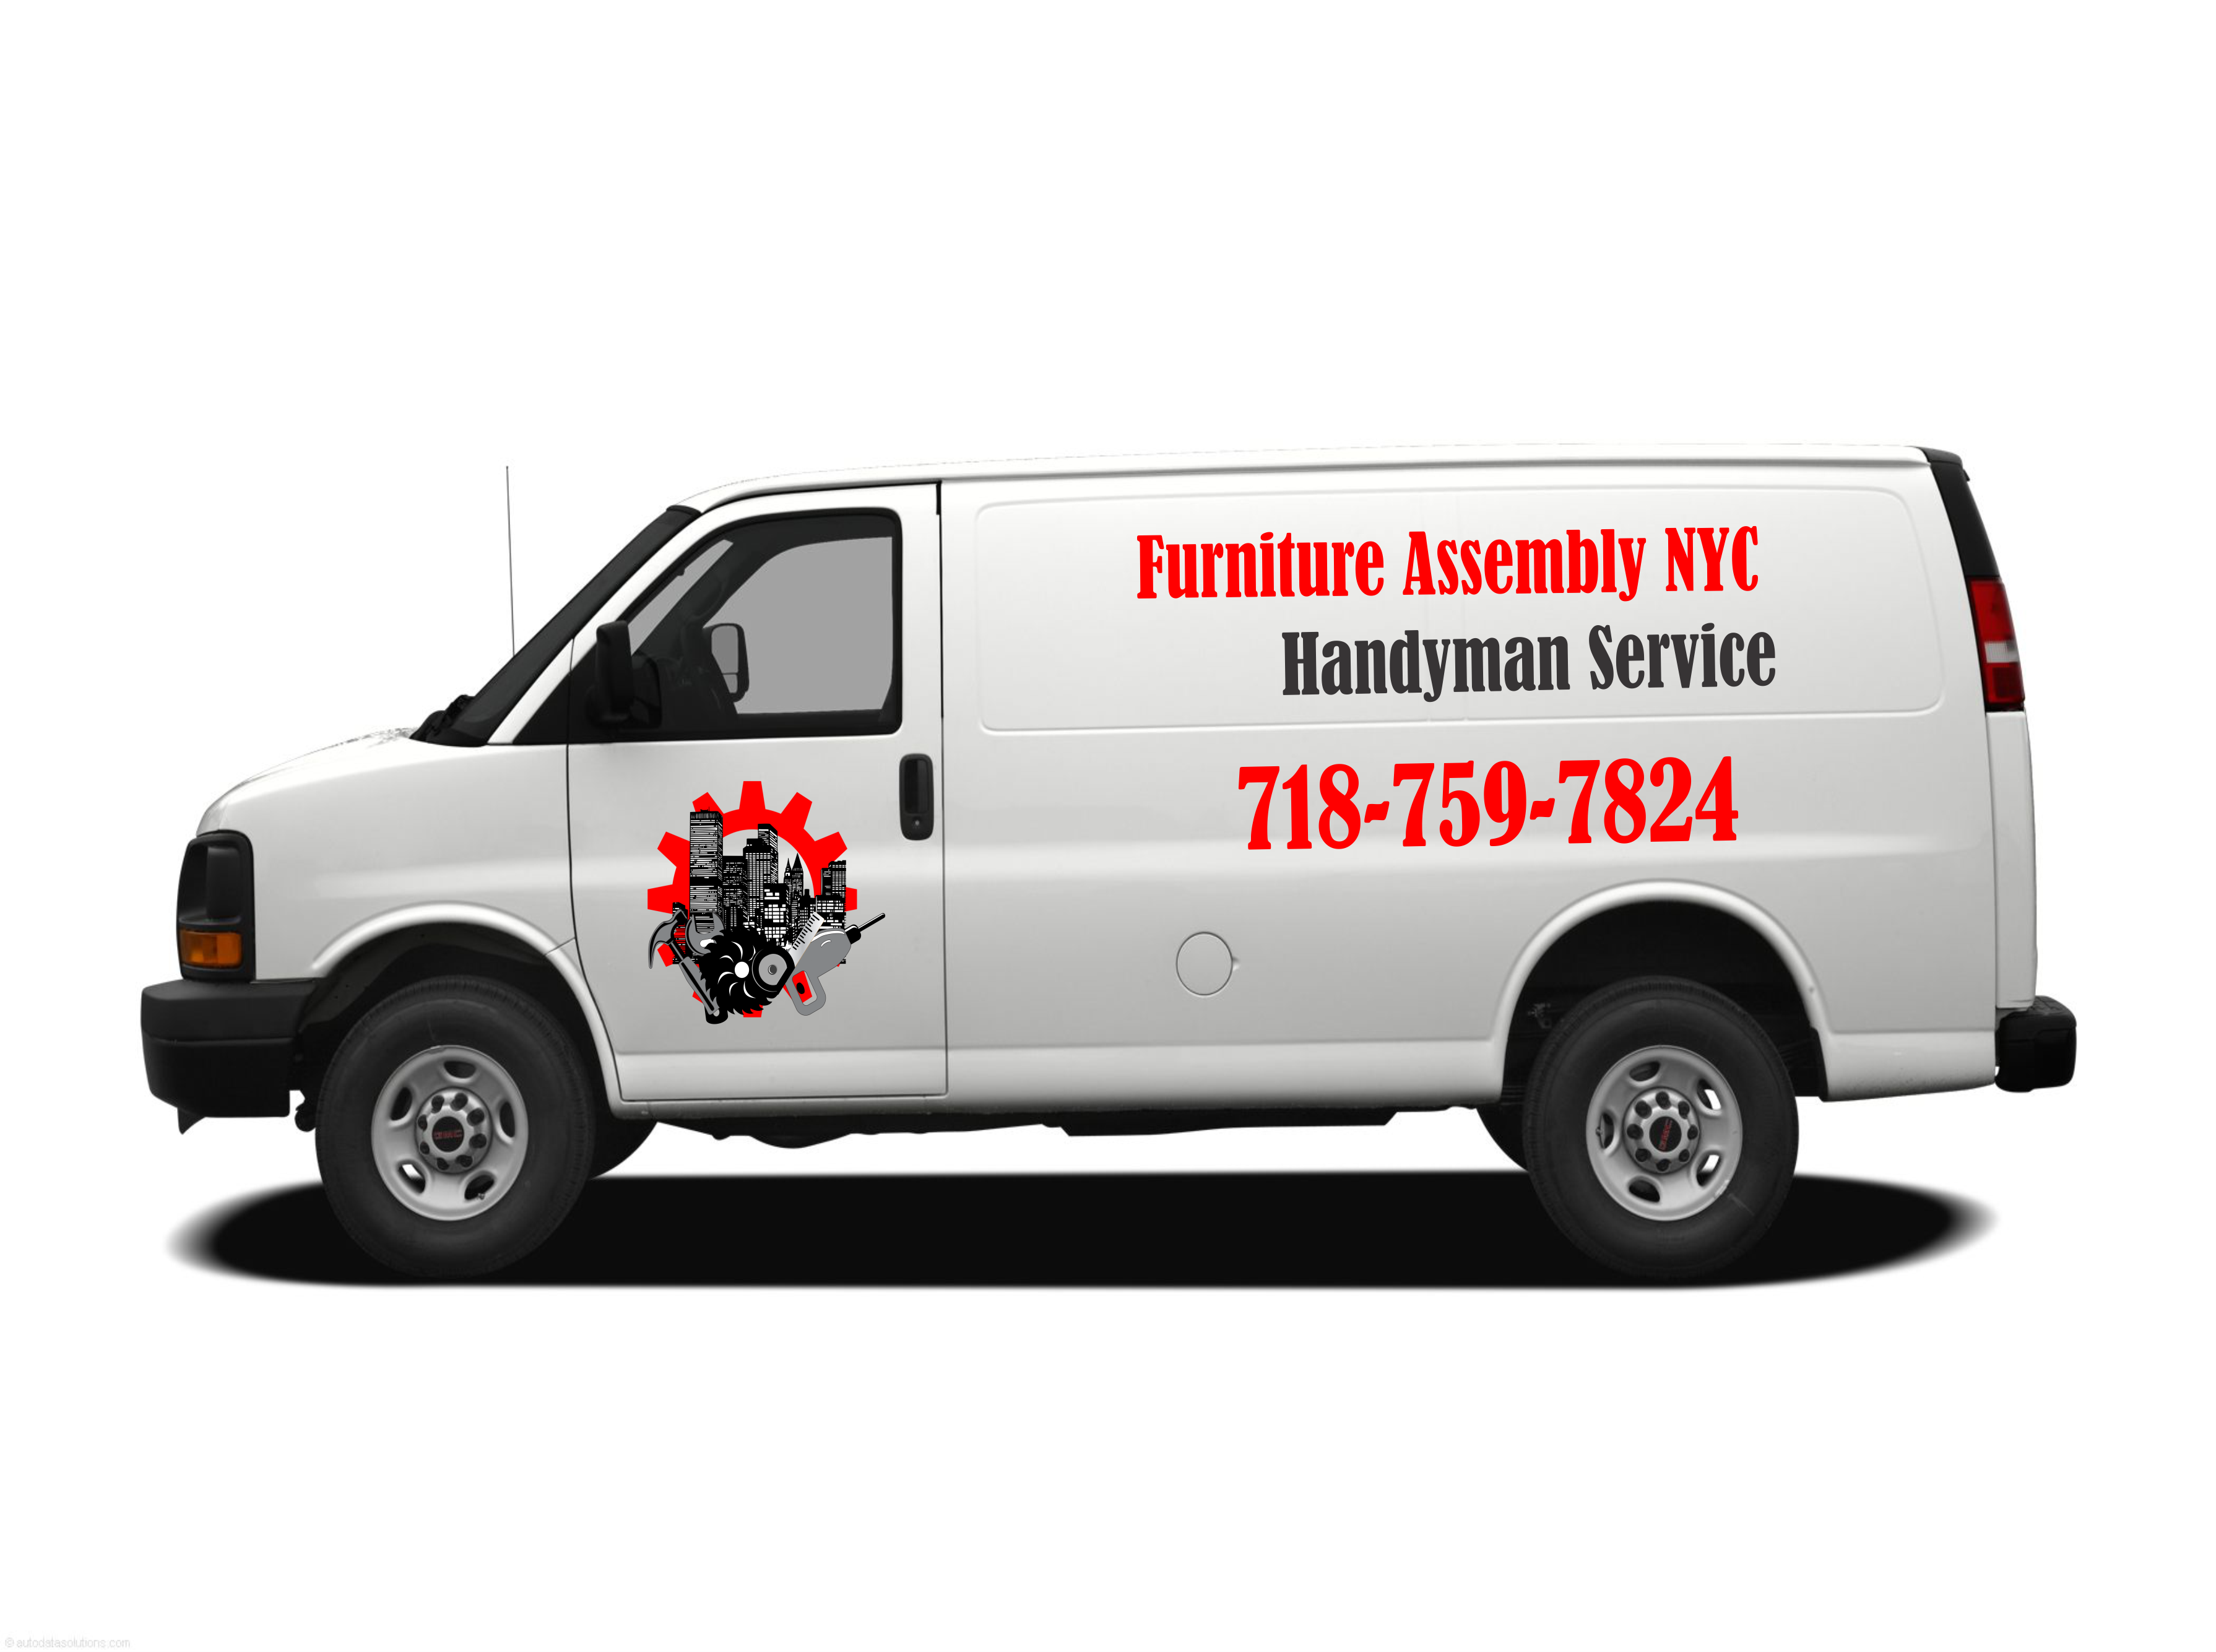 Ikea Furniture Assembly New York Furniture Assembly Nyc